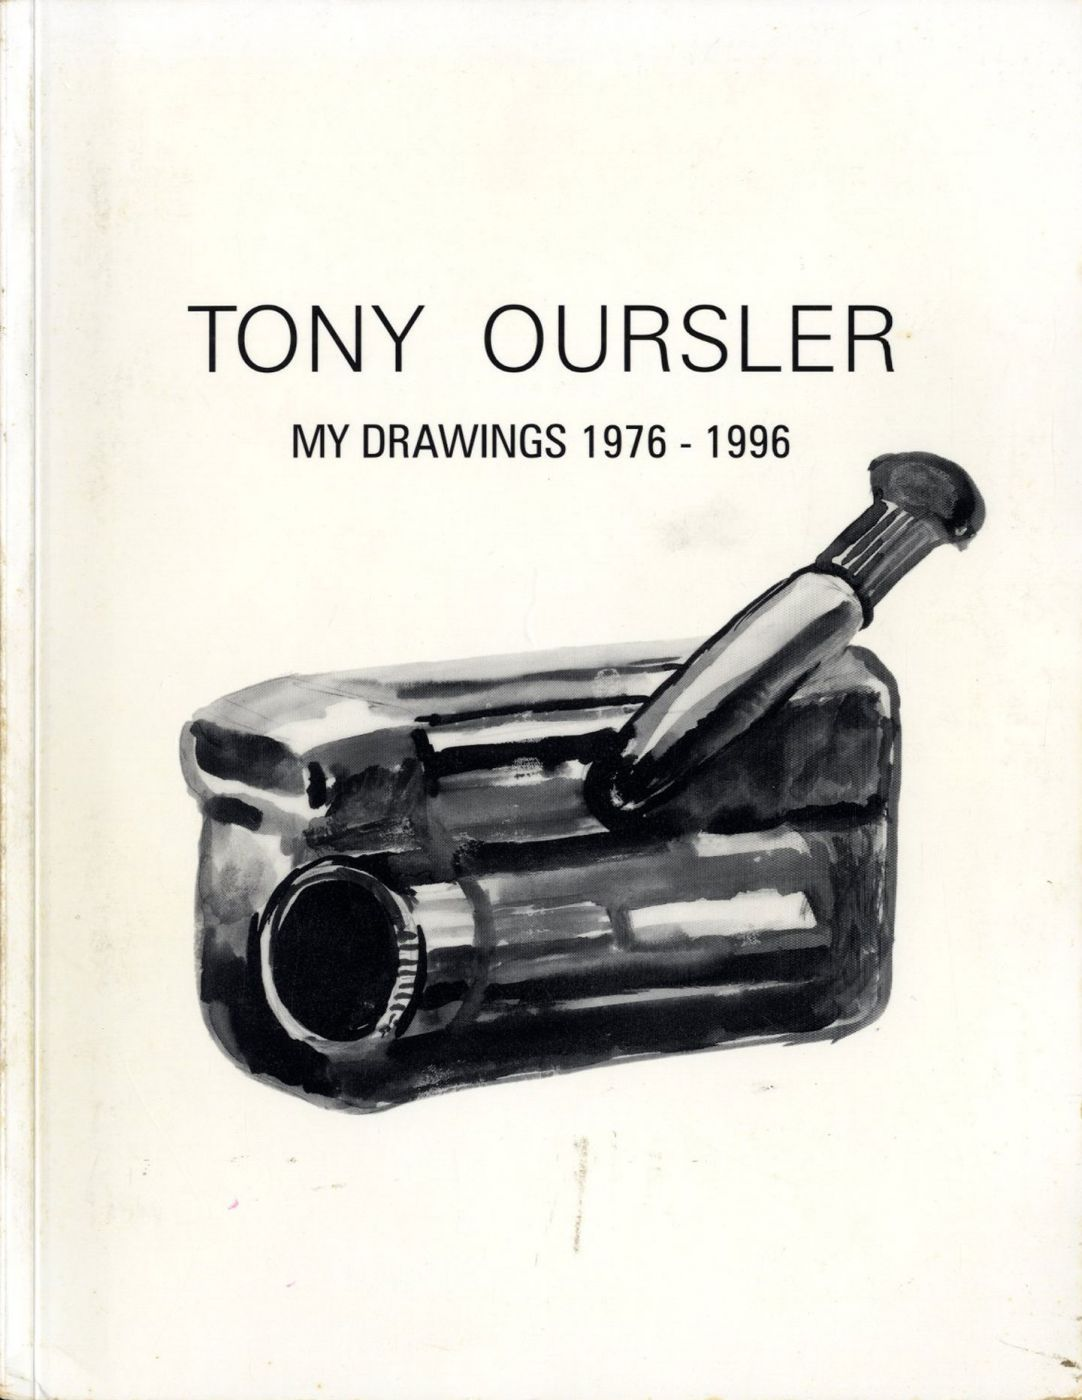 Tony Oursler: My Drawings 1976-1996